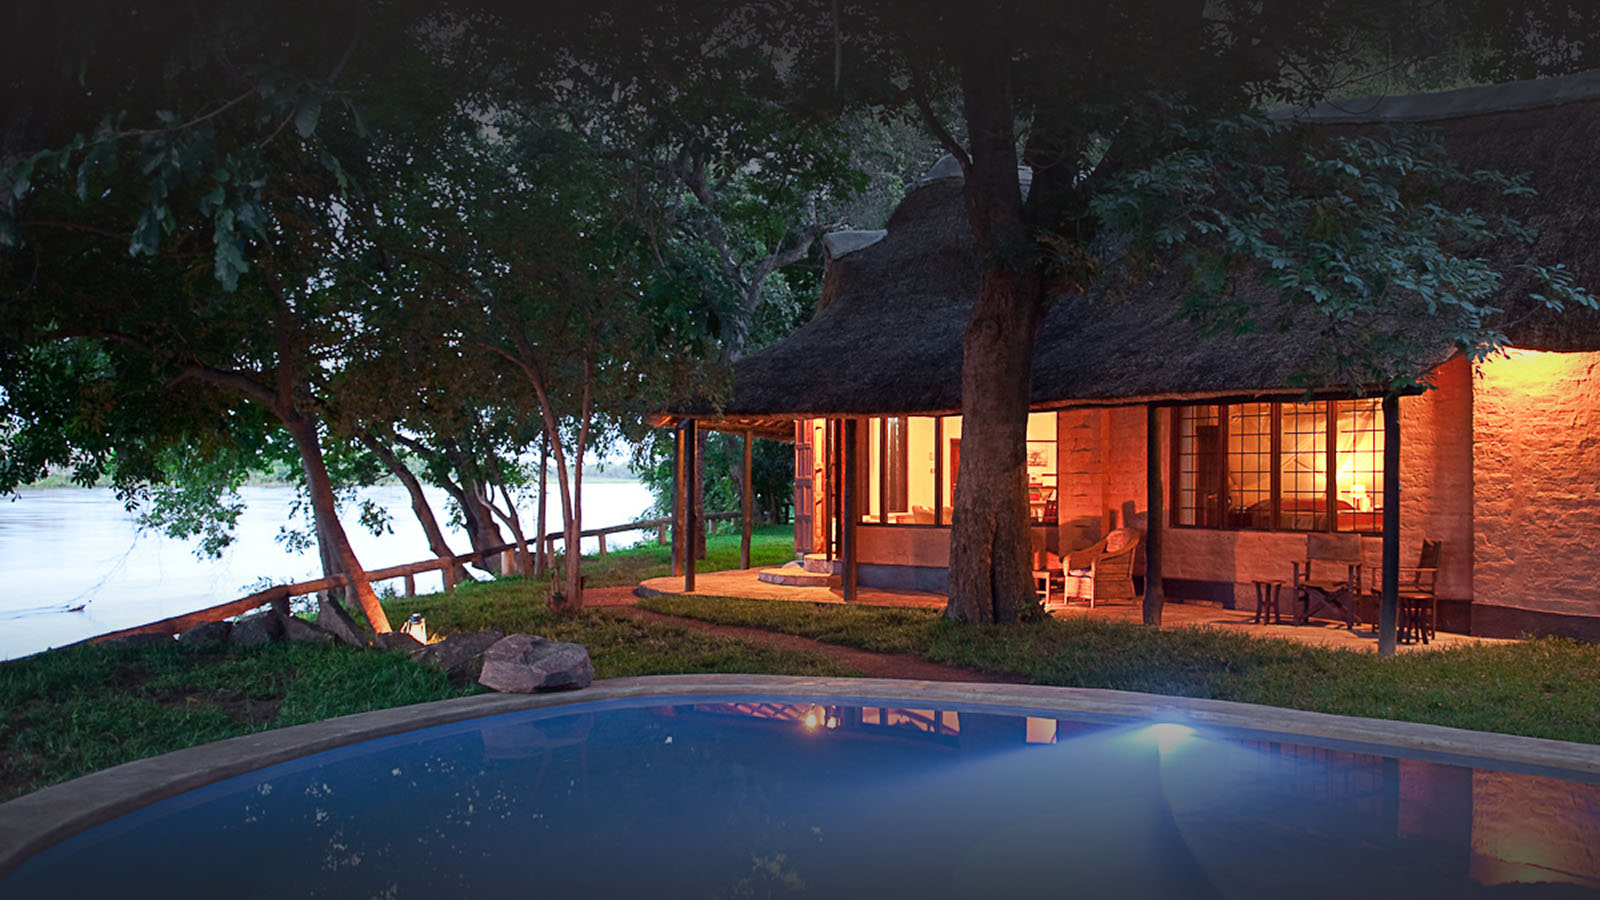 robins house lodge-zambia-in-style-tours-safari-packages-lodges-south-luangwa-national-park-house-pool